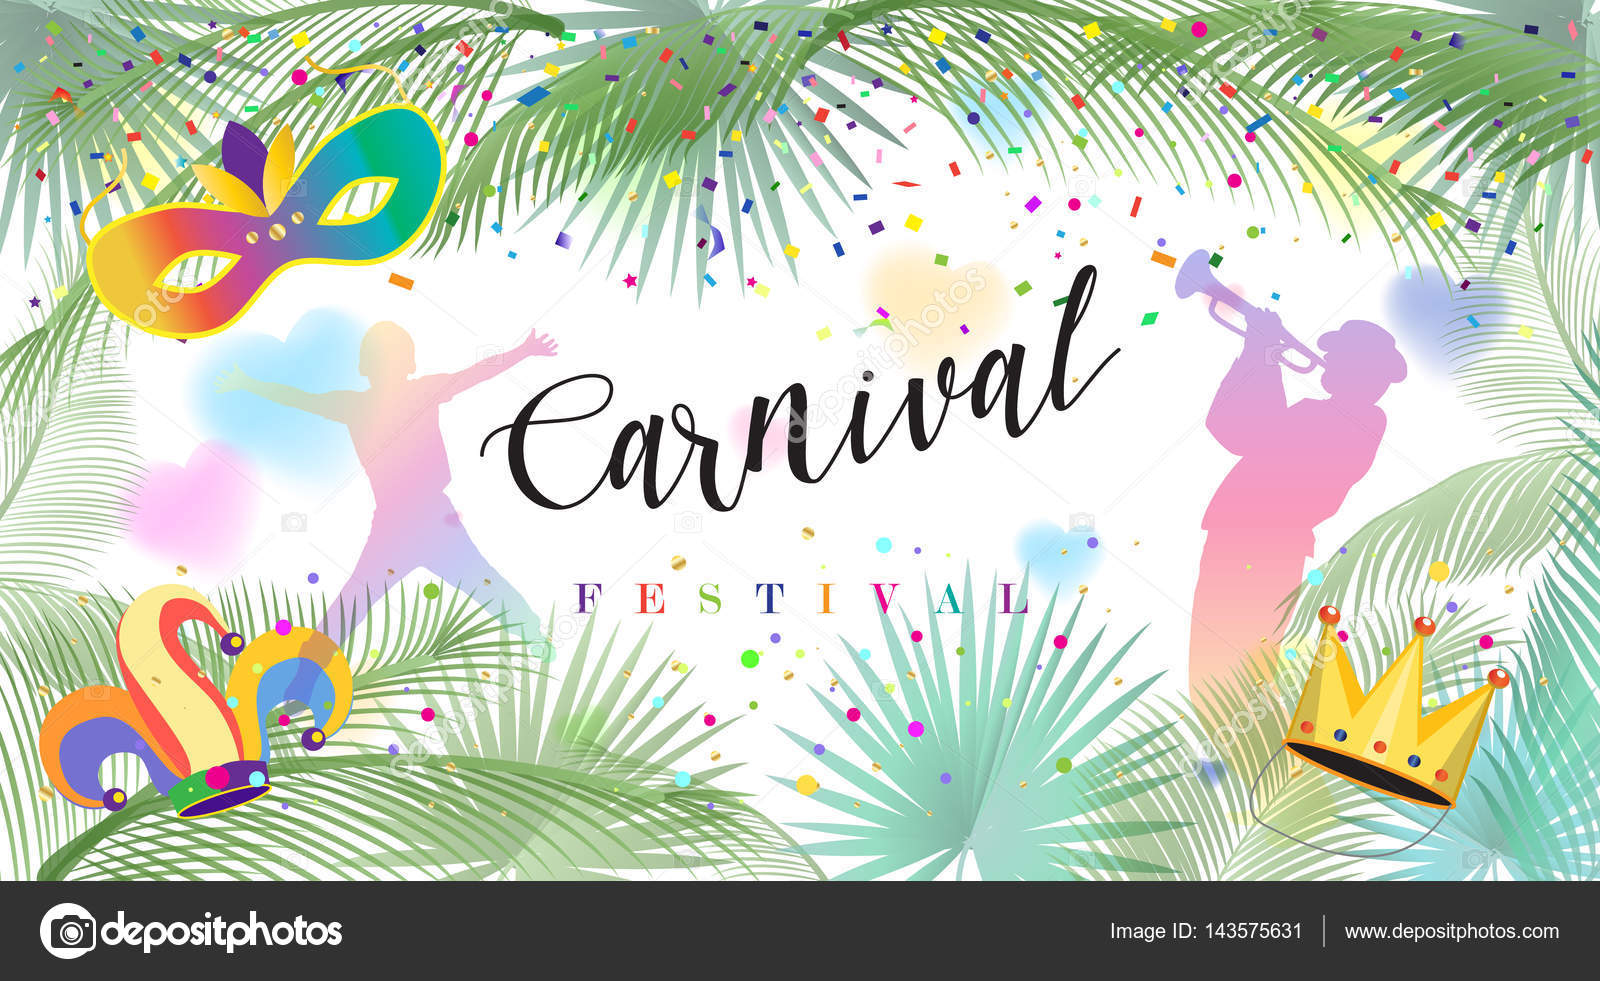 Holiday Festive Design With Confetti Musicians Venetian Carnival Mask Crown Street Festival Advertising Decoration Palm Tree Leaves Frame